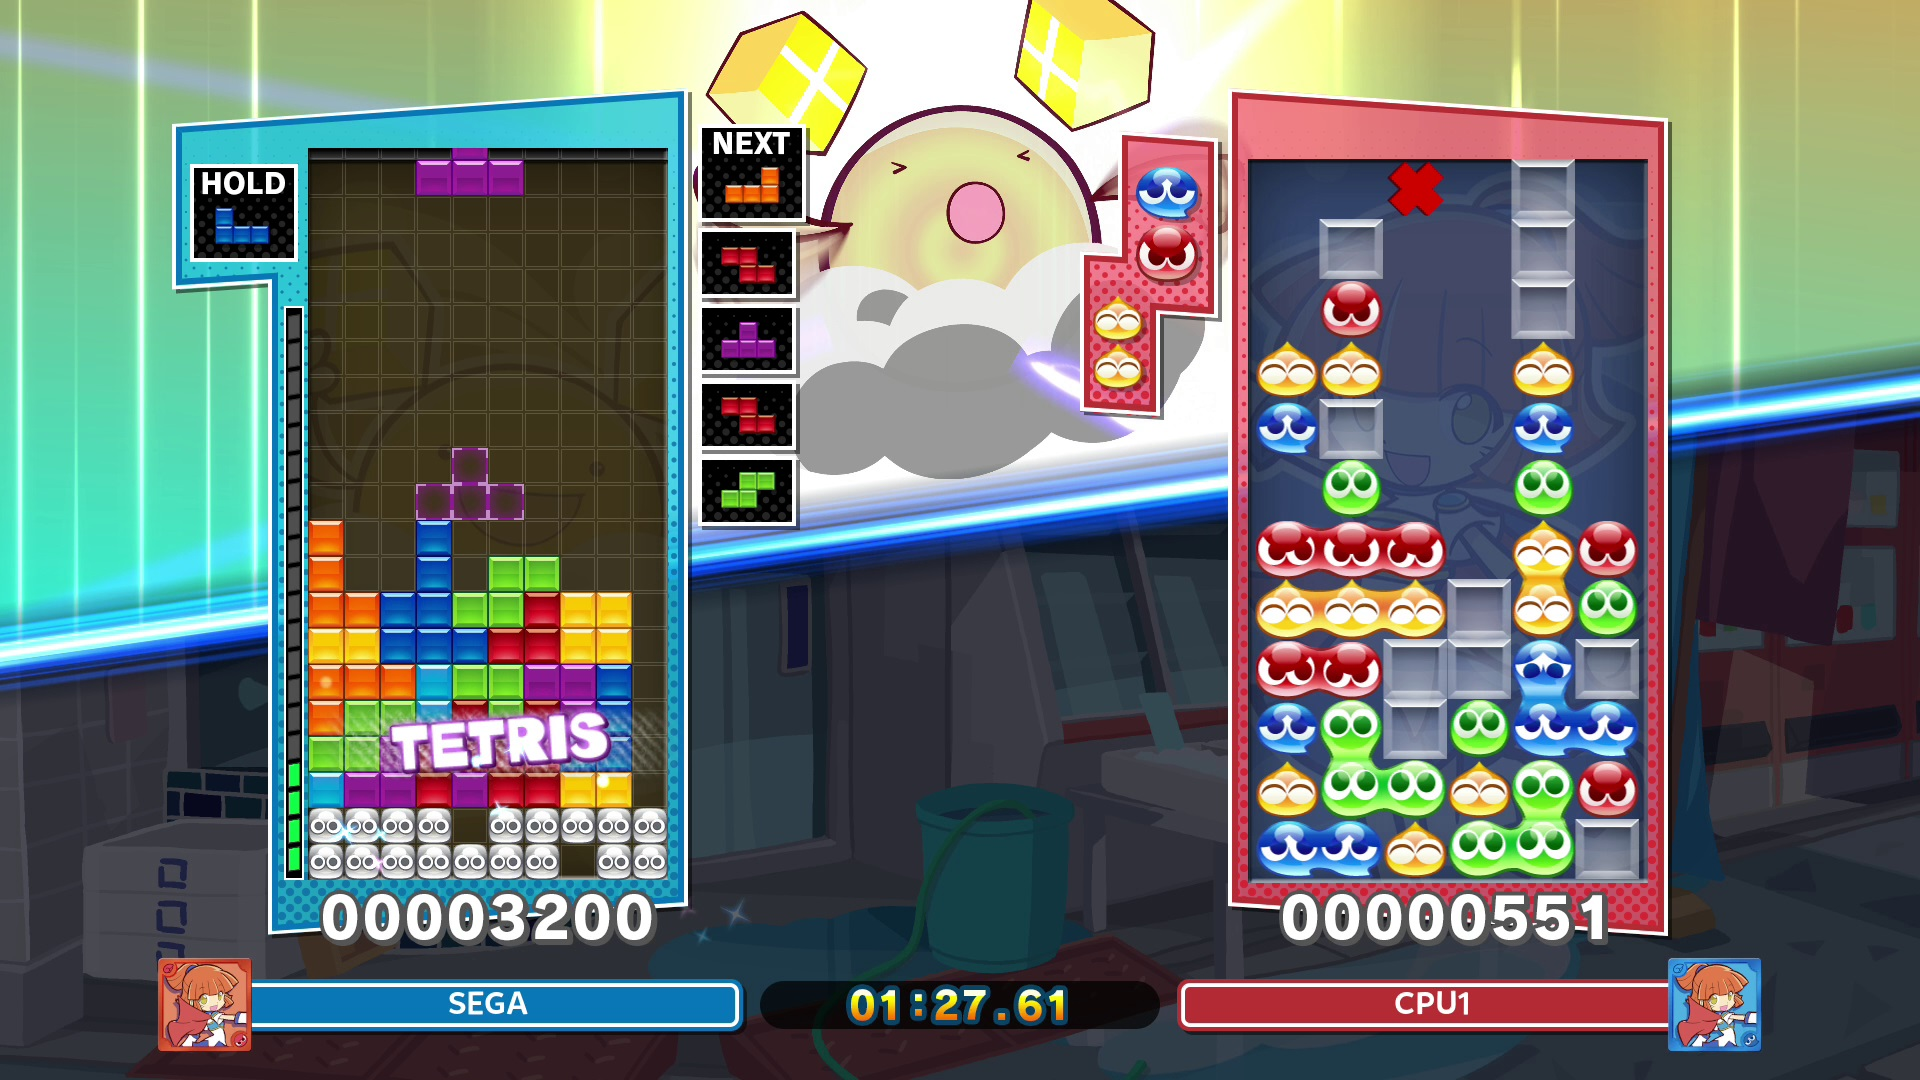 Puyo Puyo Tetris 2 will bring back adventure mode, is coming to basically every system screenshot